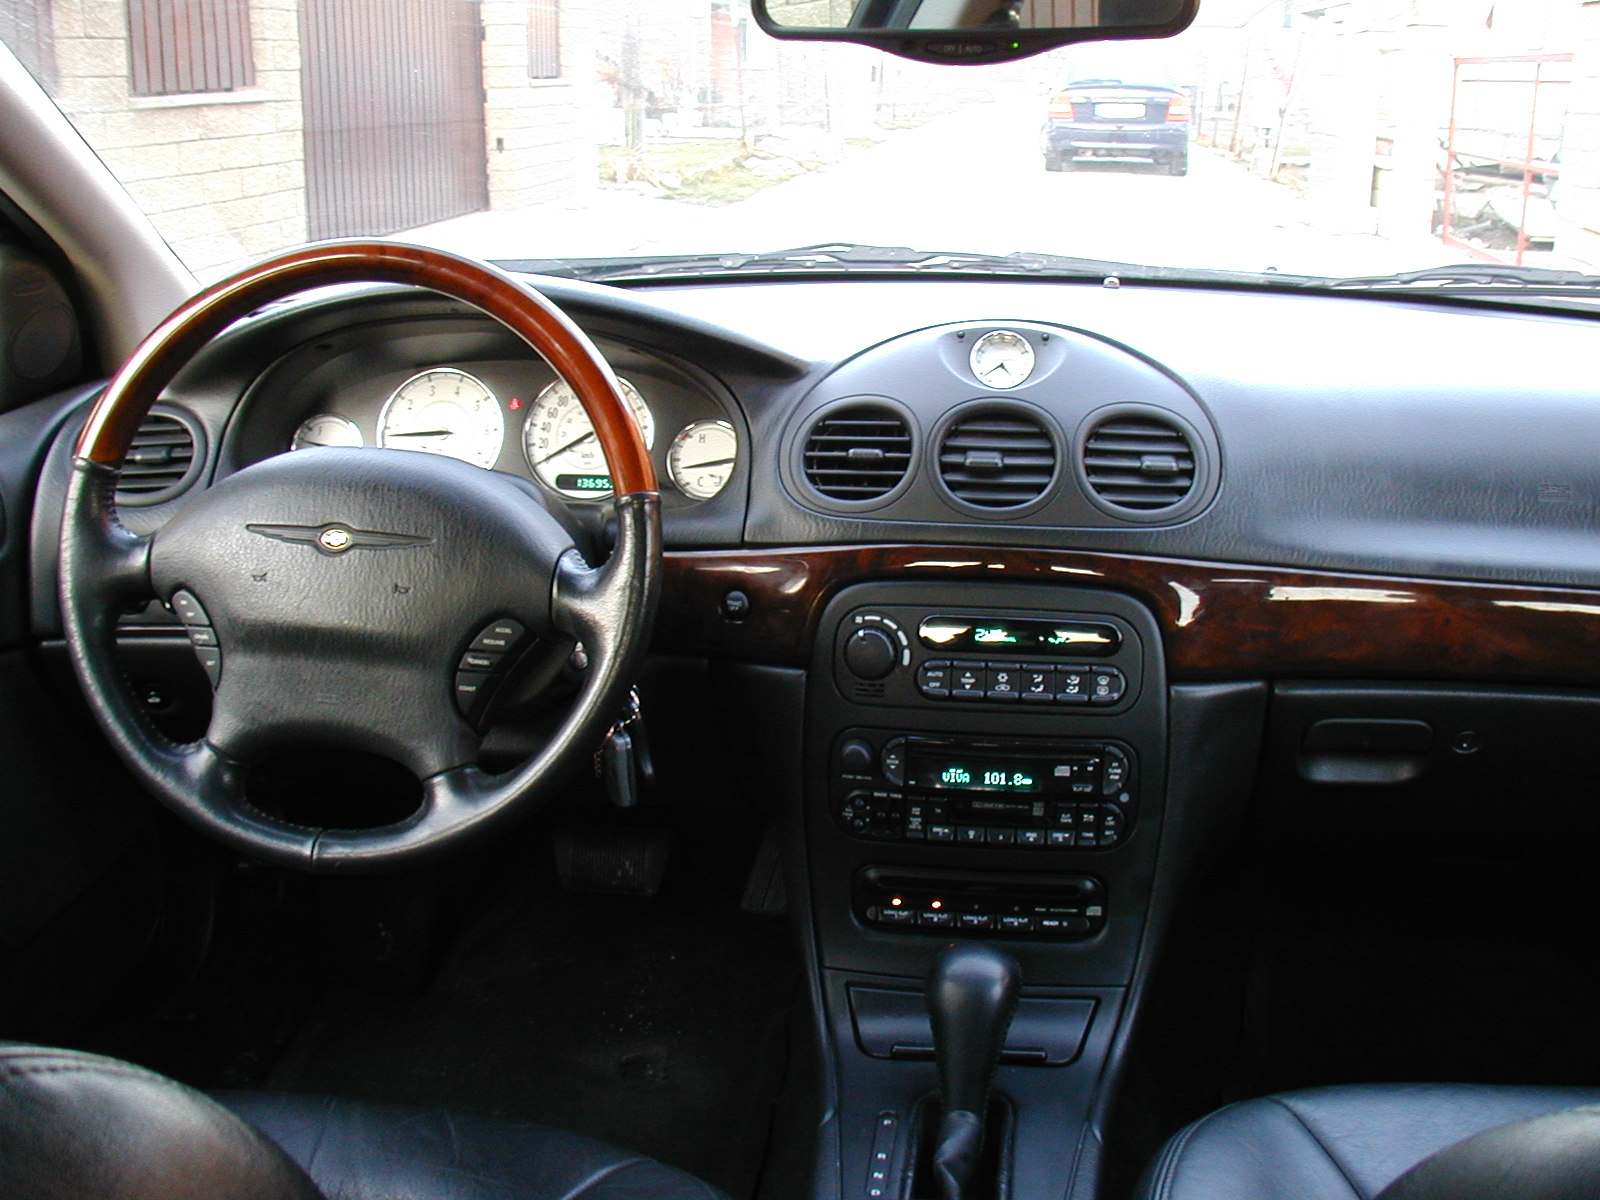 2002 Chrysler 300m #9